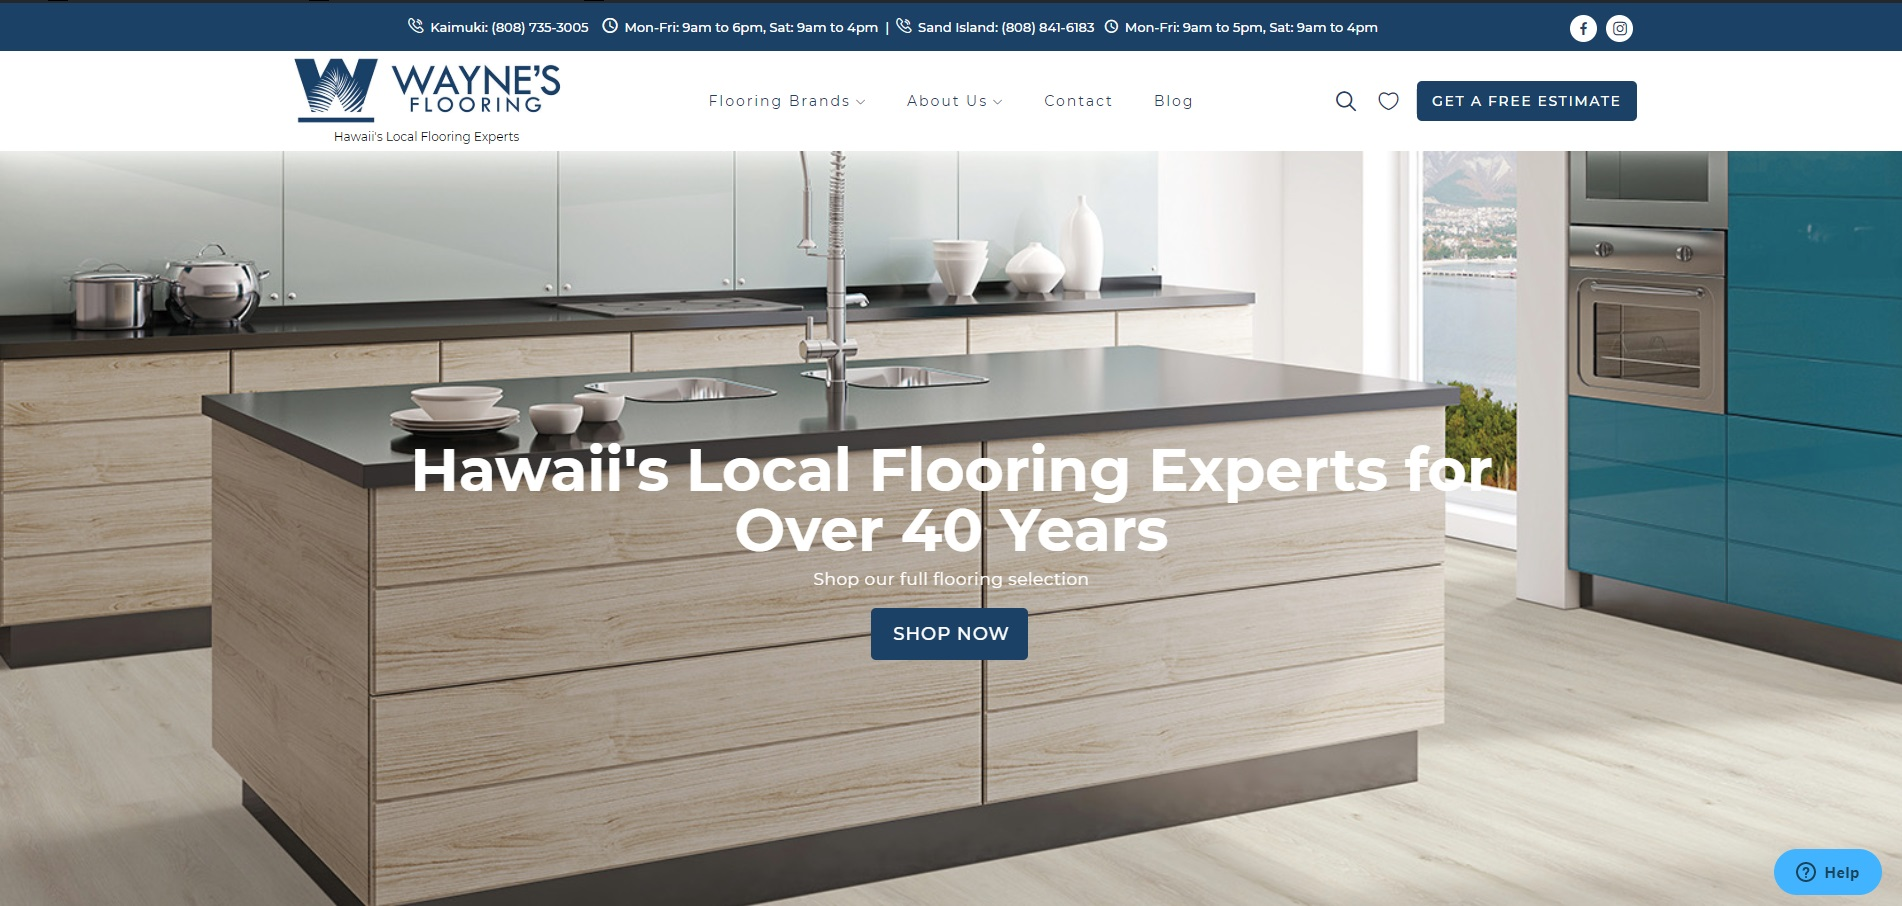 Hawaii Web Site Design and Branding- Wayne's Flooring Hawaii -